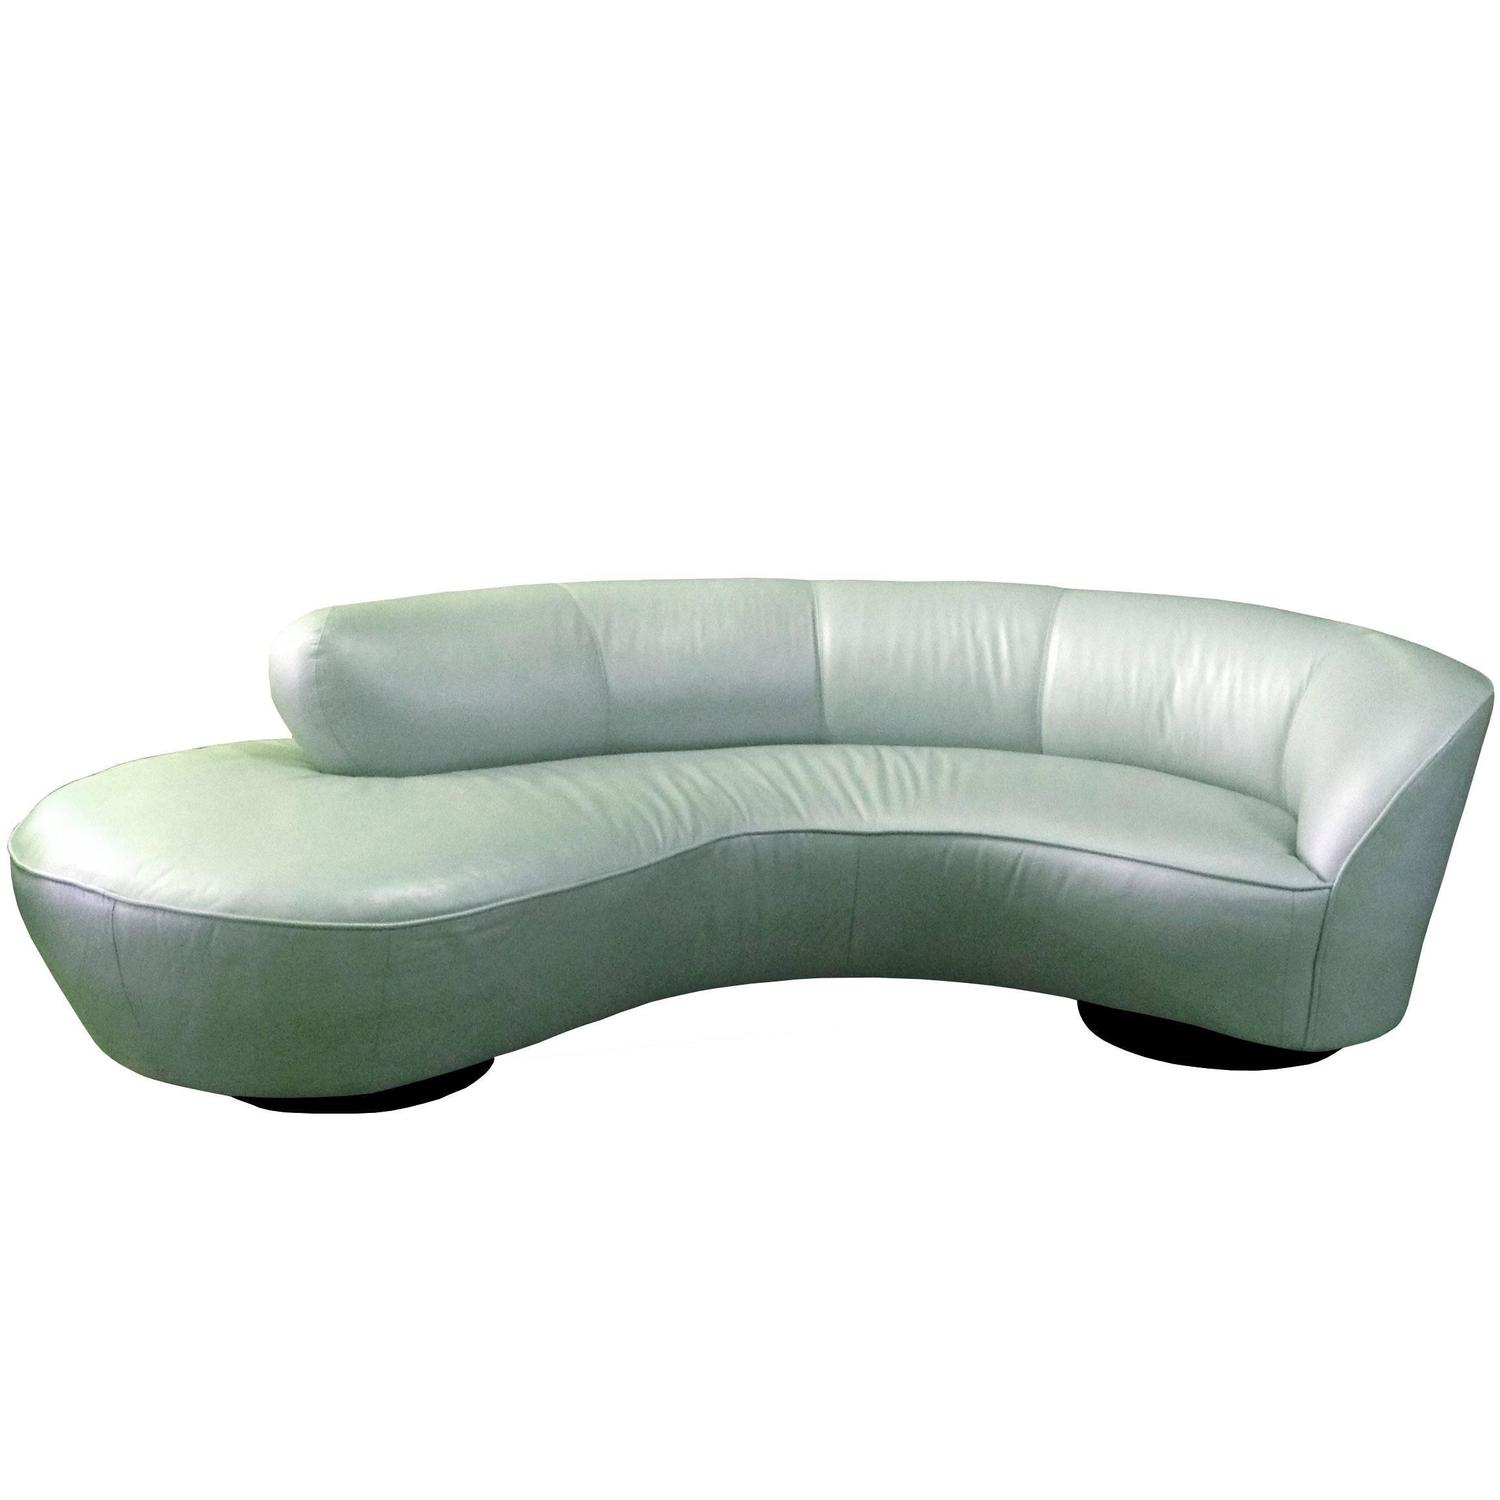 Vladimir Kagan Sofas Serpentine Cloud & More 69 For Sale at